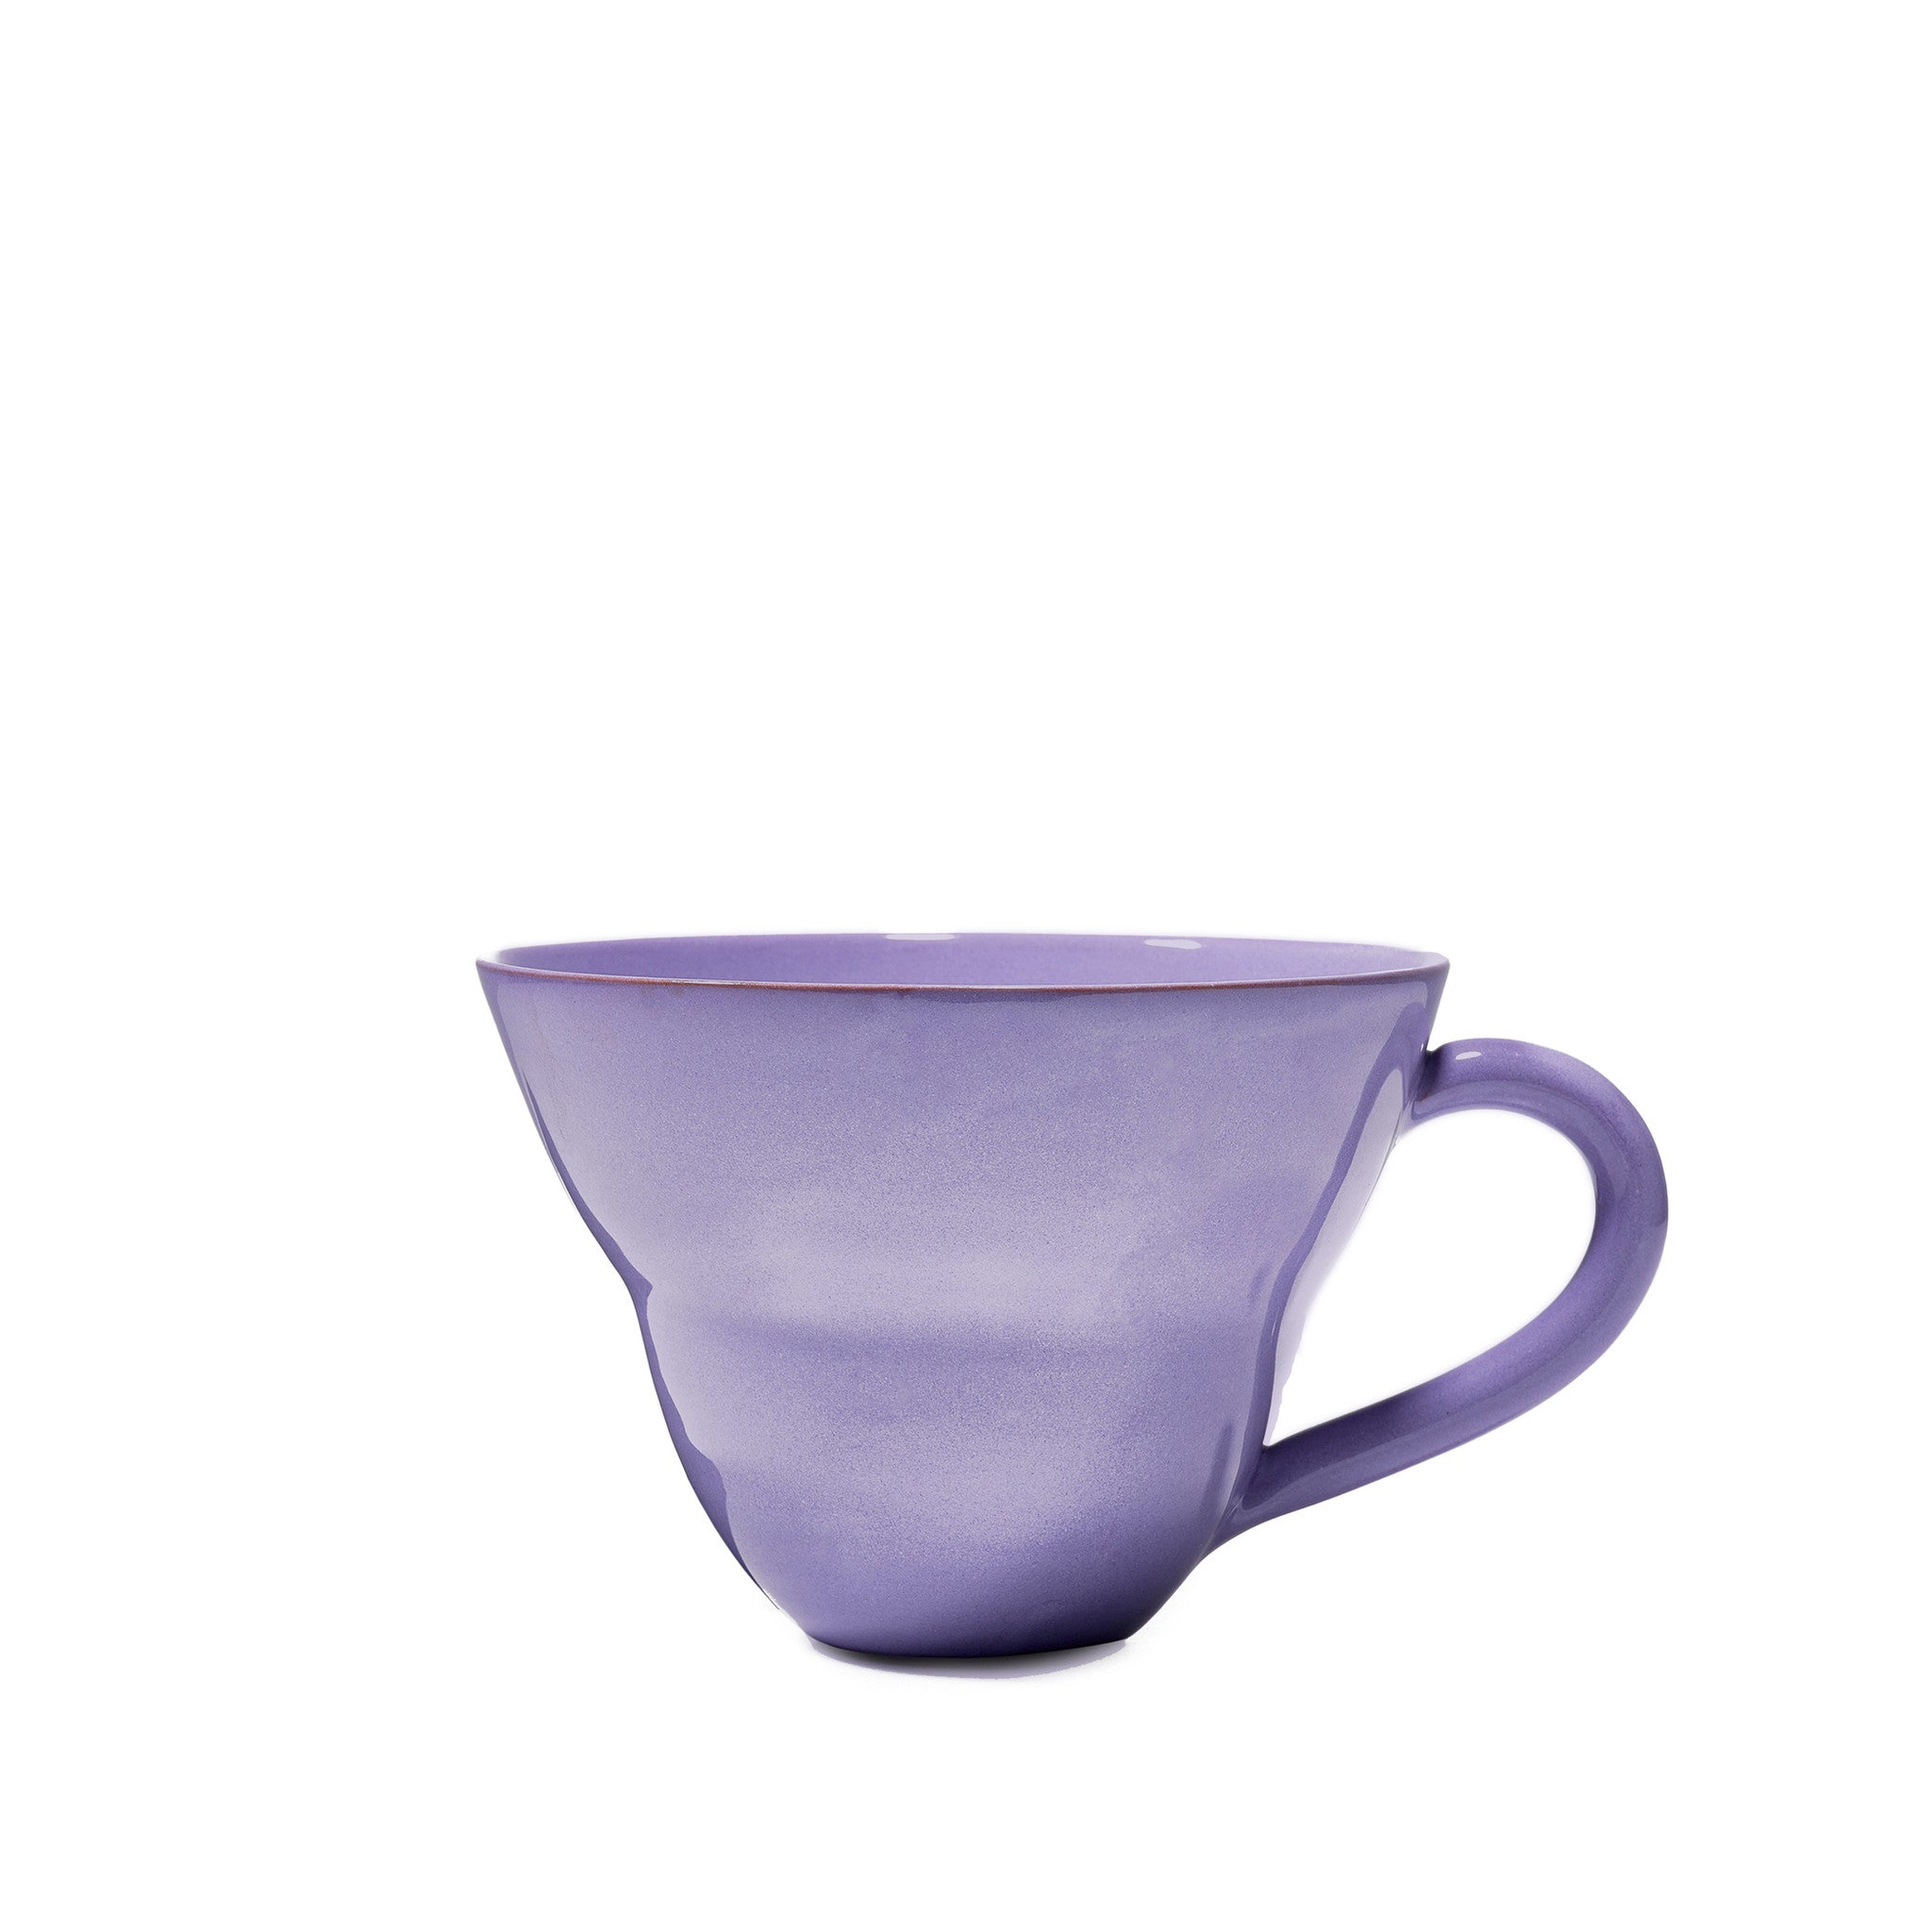 Hot Chocolate Mug in Lilac